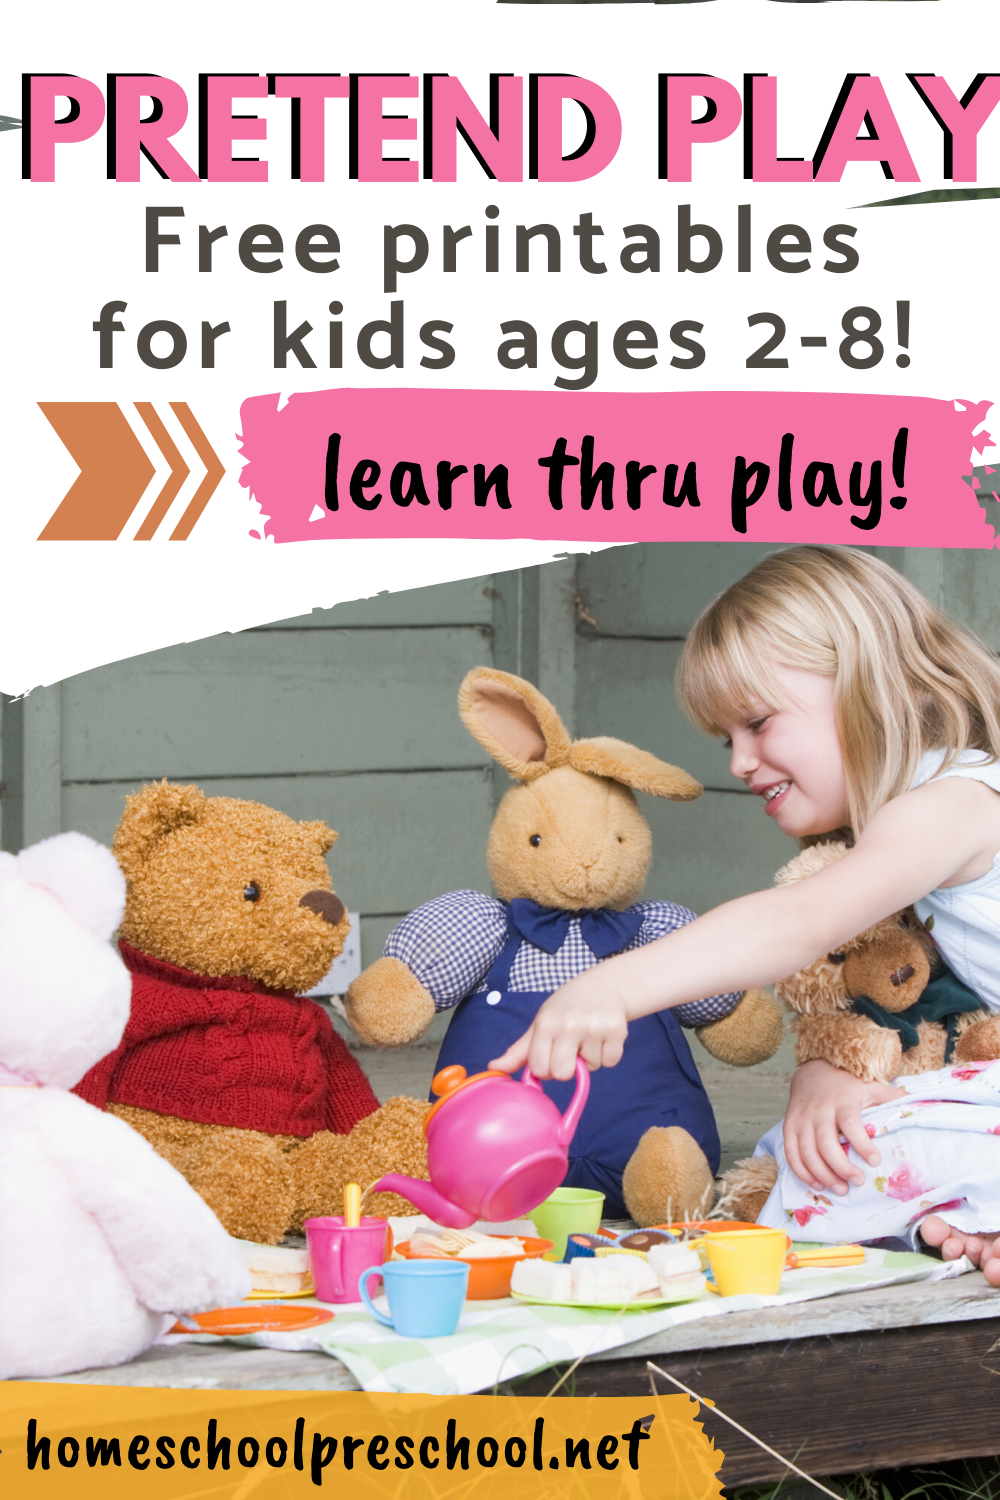 Kids learn best through play! It helps them learn skills in a natural way. These pretend play printables are perfect for preschool and kindergarten!